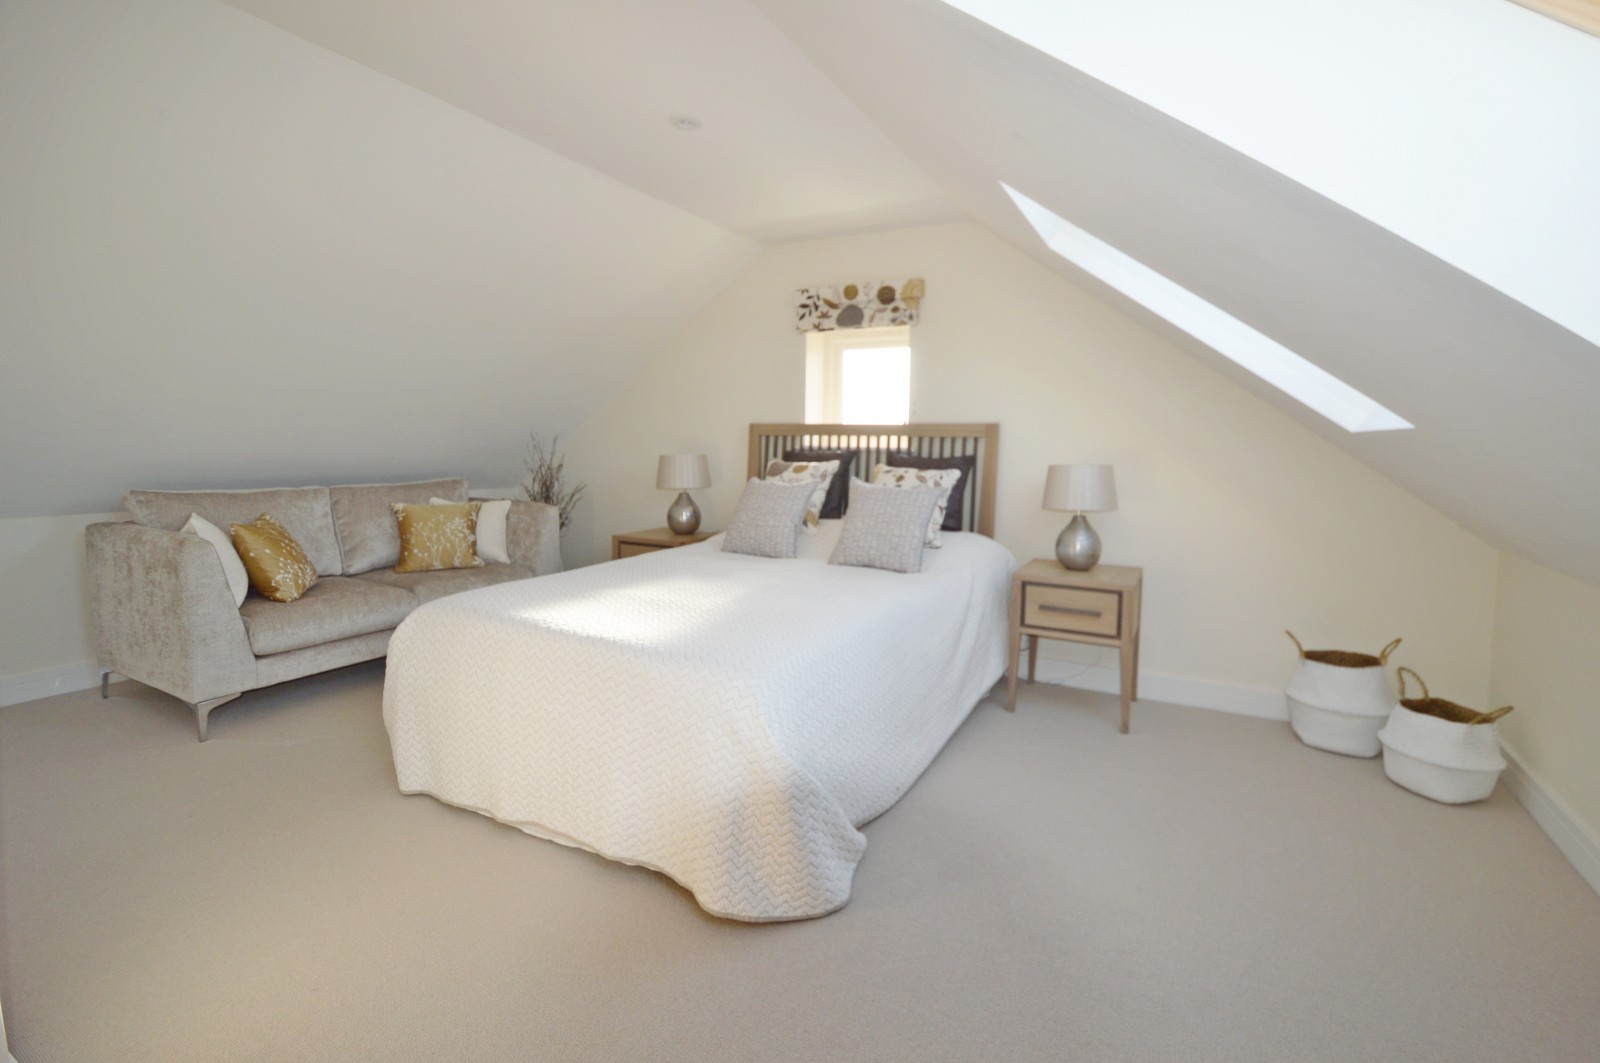 Bedroom 4 Property to let in Ropley